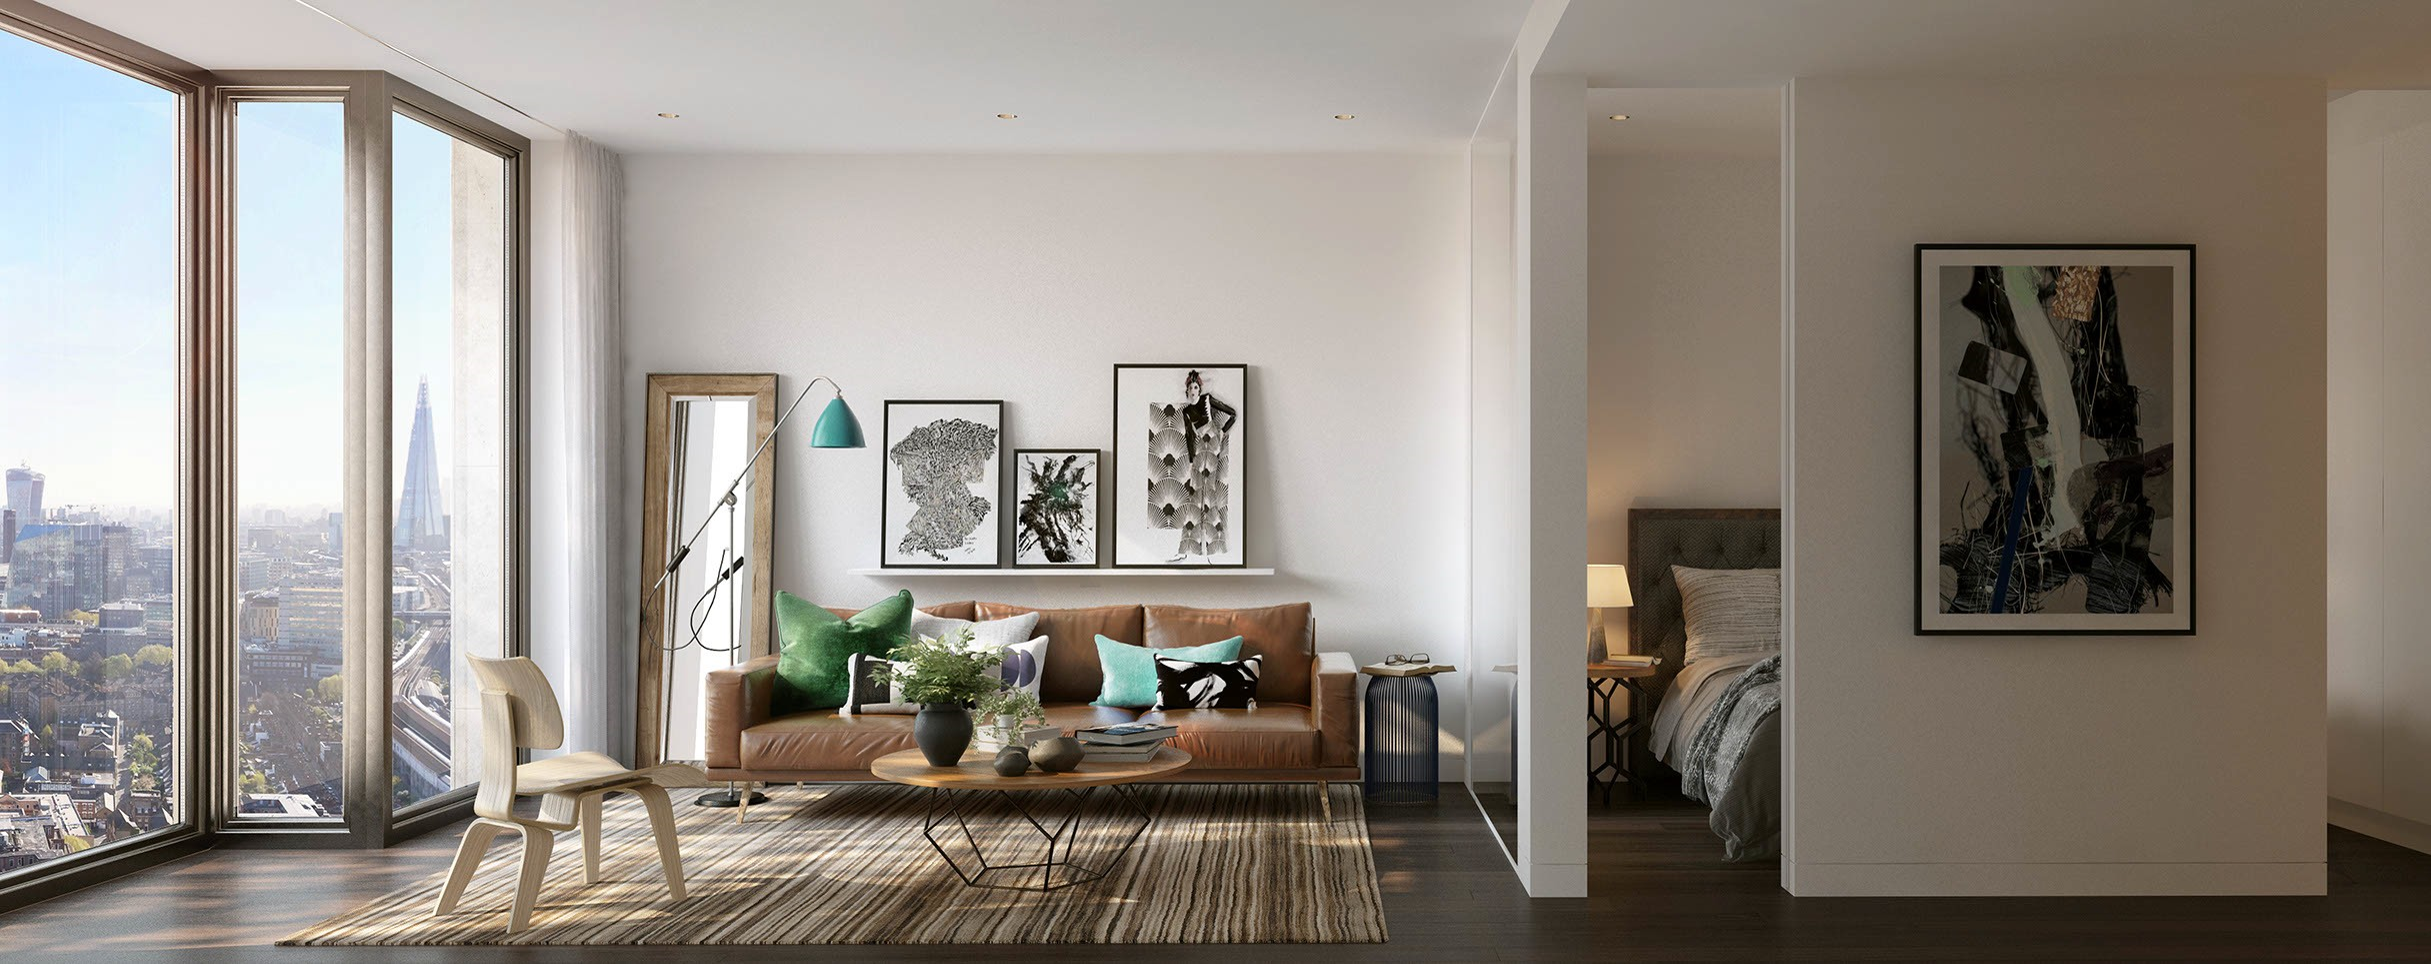 Scheduled For Completion In 4Q2019, 8 Casson Square Is A